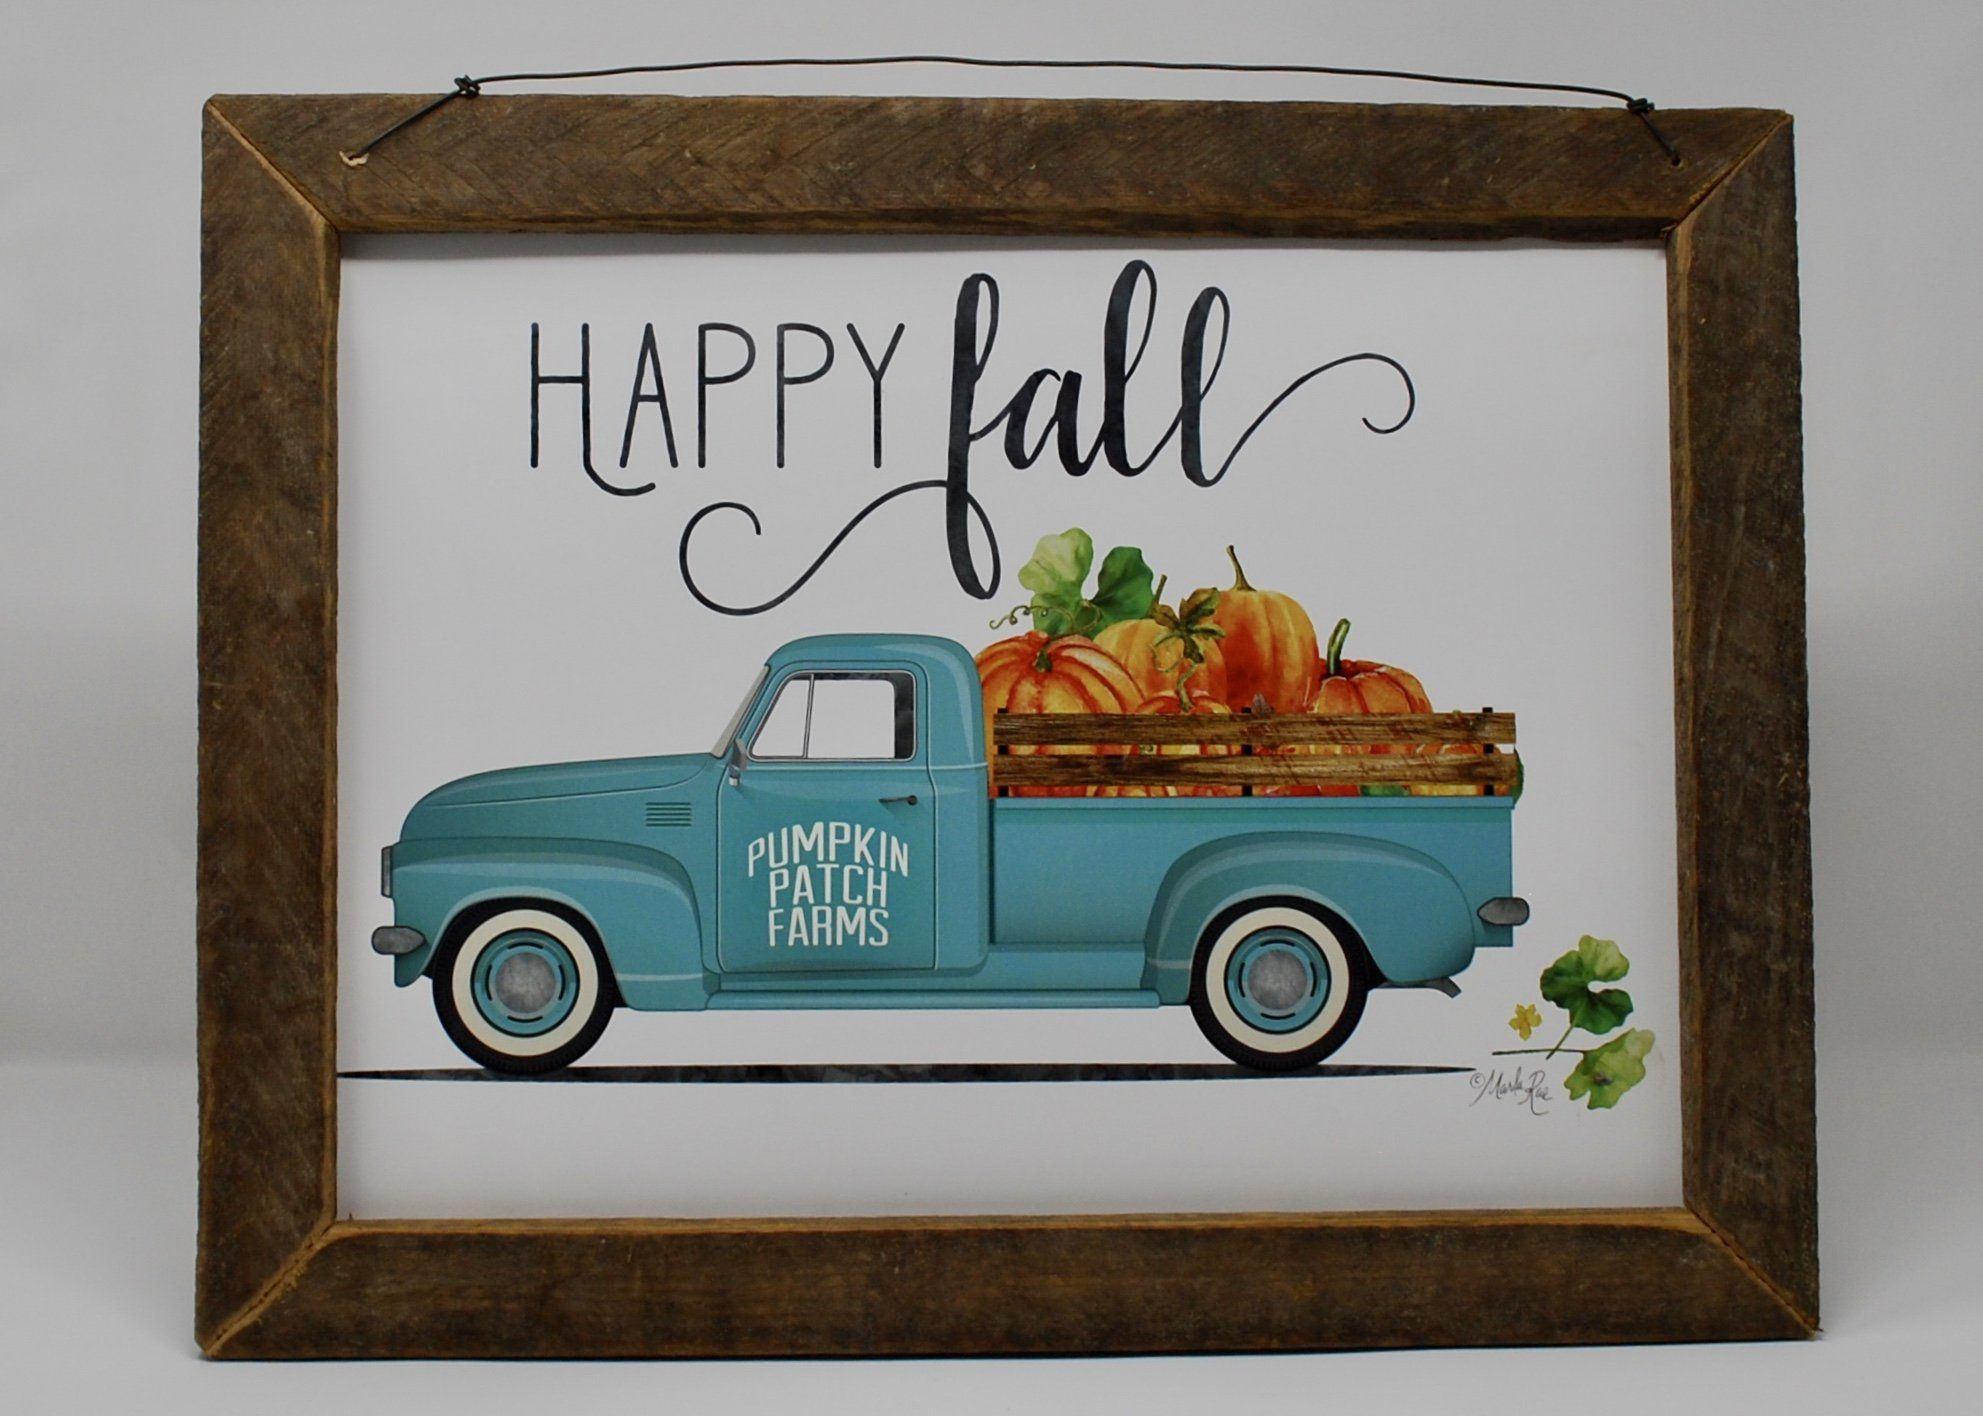 Rustic Truck Decor, Fall Decor, Rustic Truck with Pumpkins, Fall Rustic Truck, Rustic Truck Sign, Fall Wood Sign